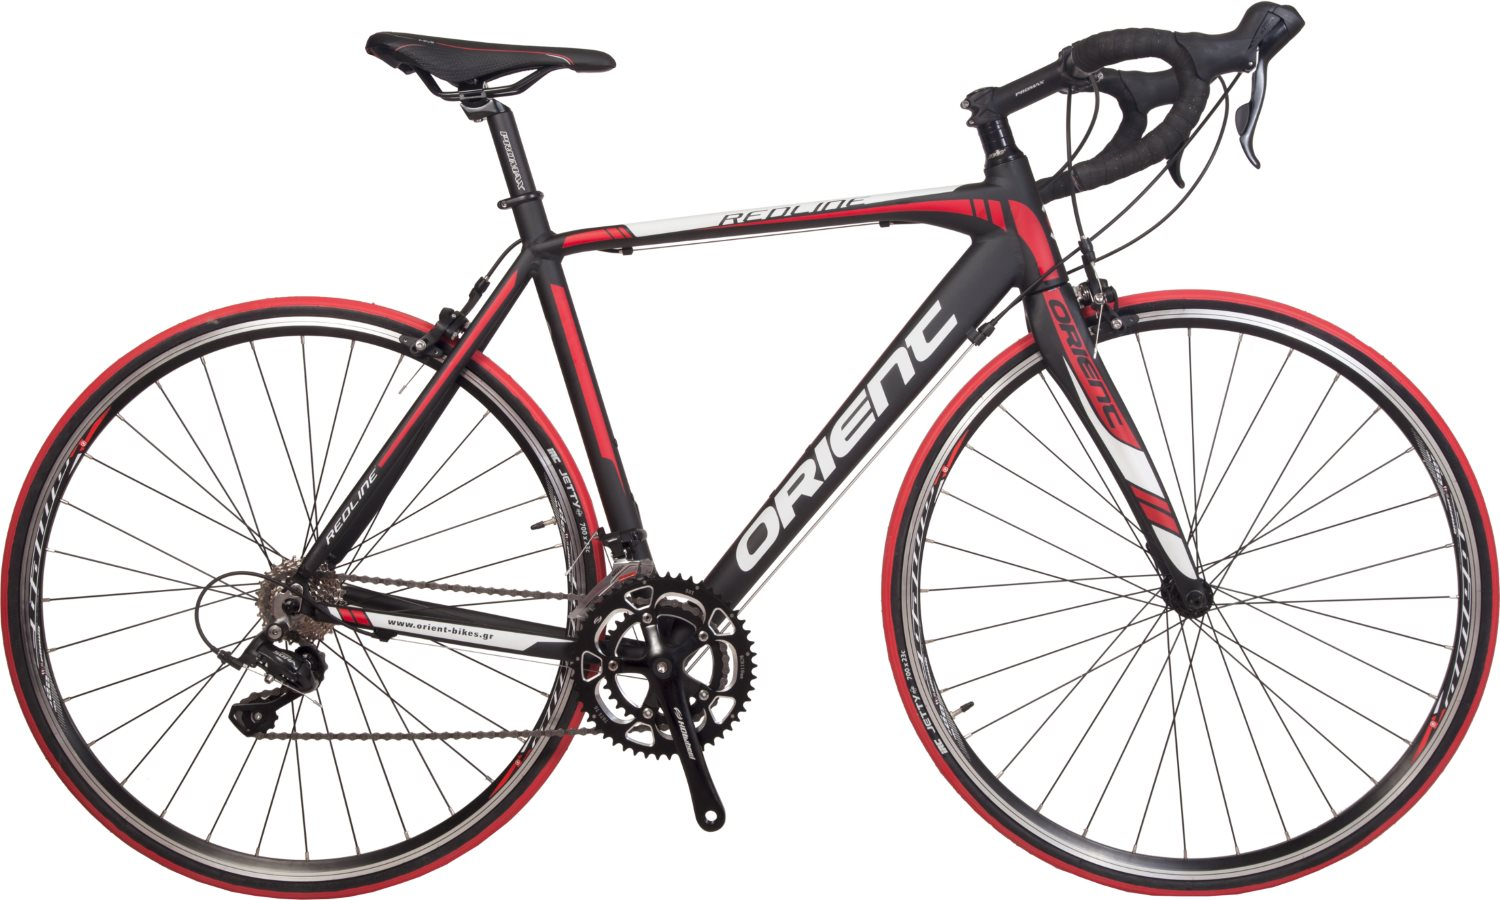 REDLINE 18sp. bike image